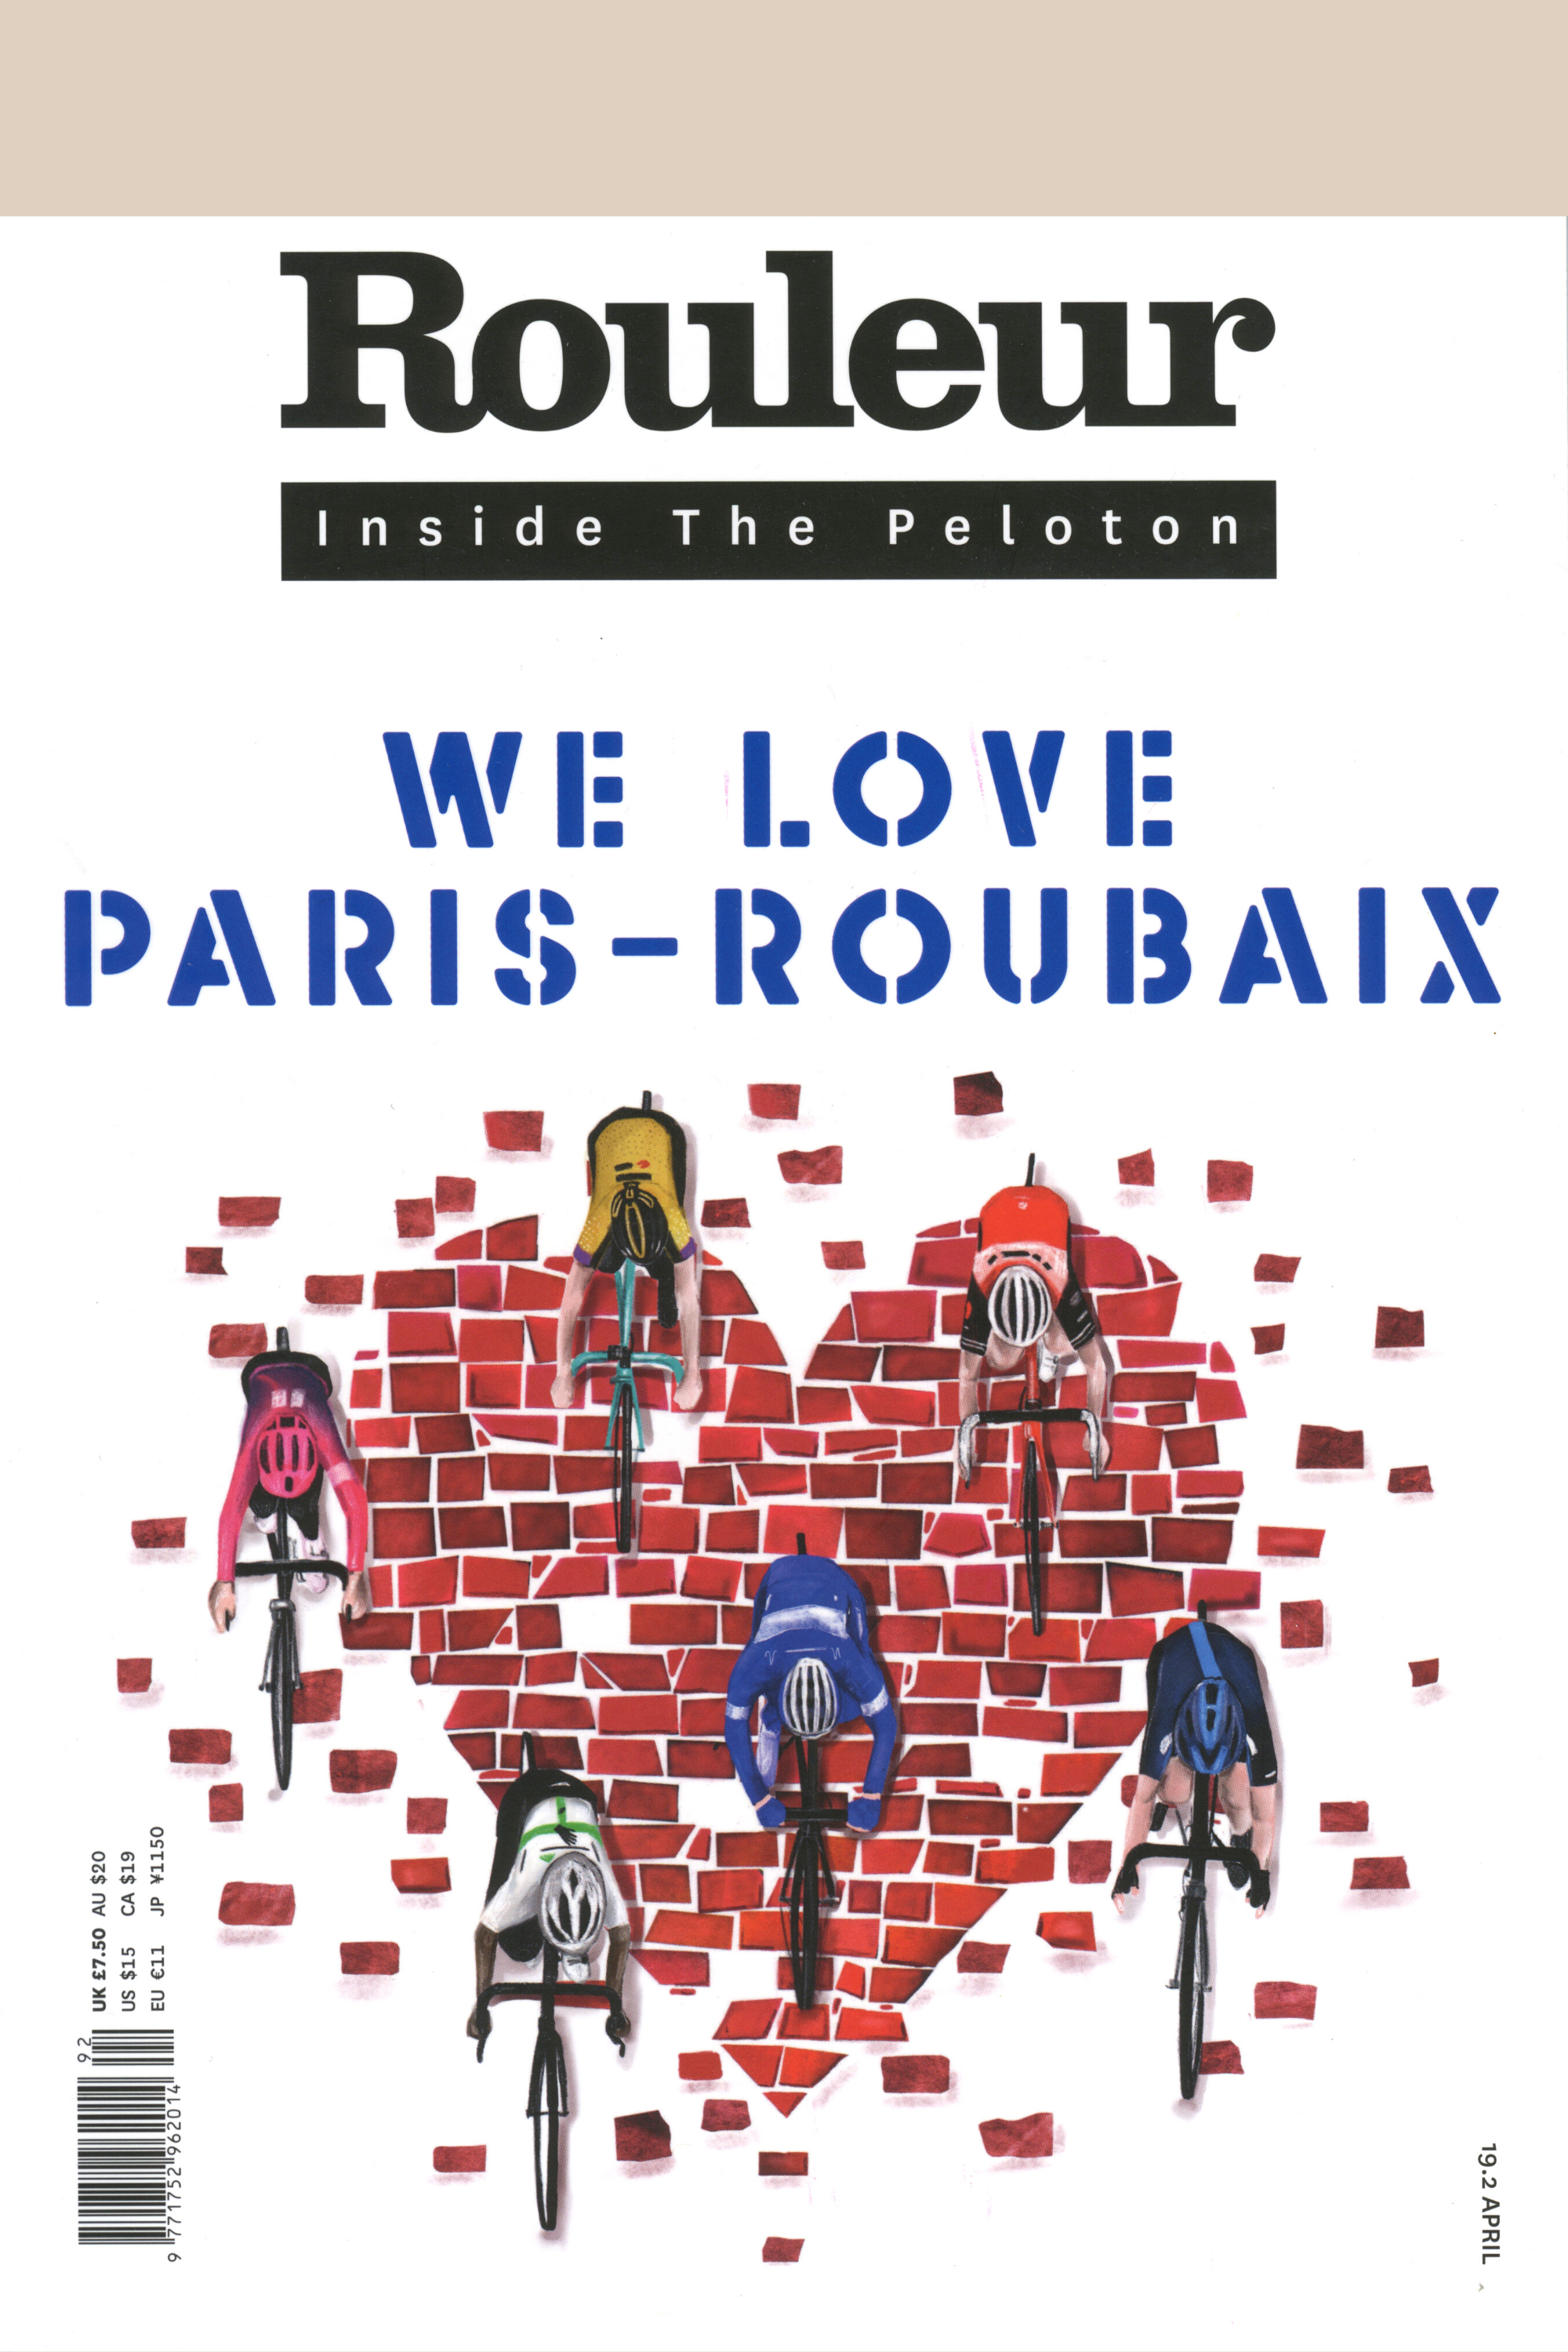 Rouleur Issue 19.2